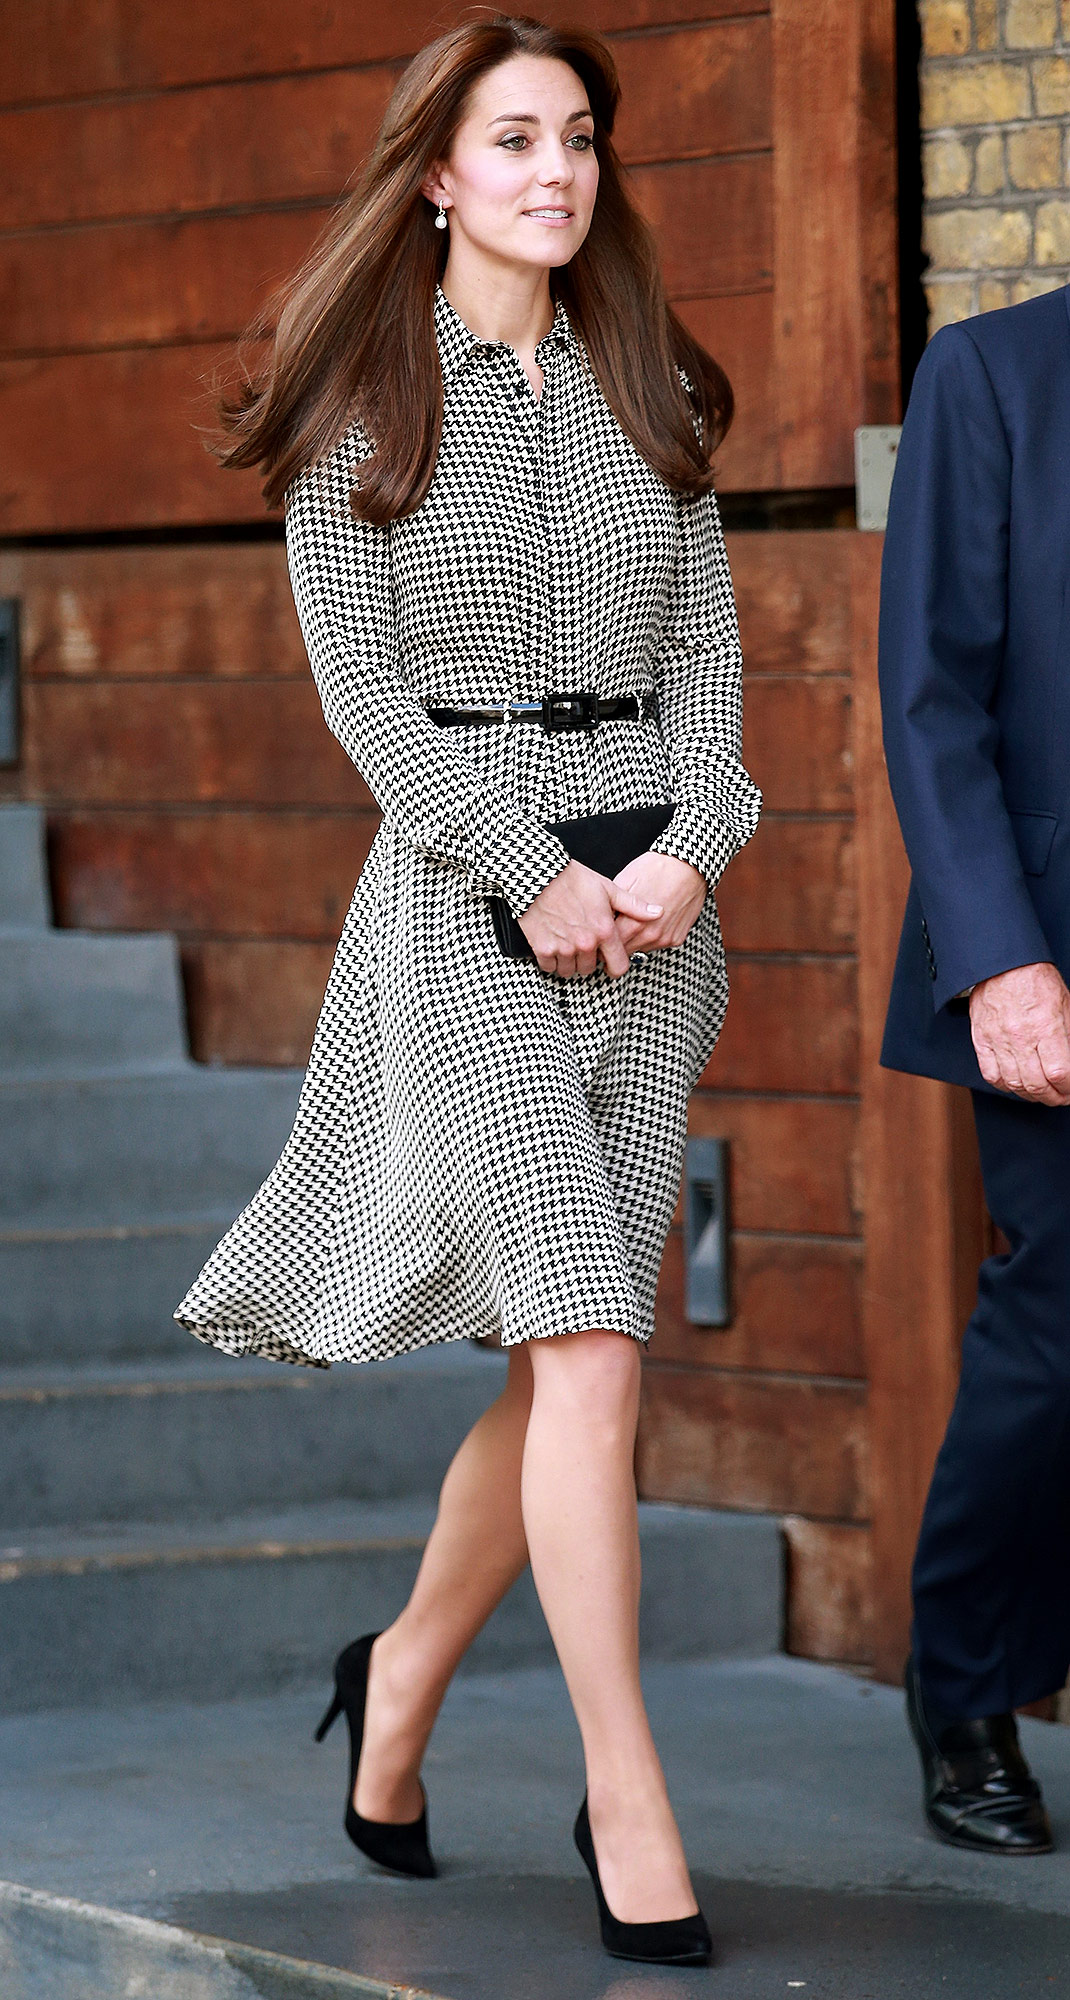 The Duchess Of Cambridge Visits The Anna Freud Centre